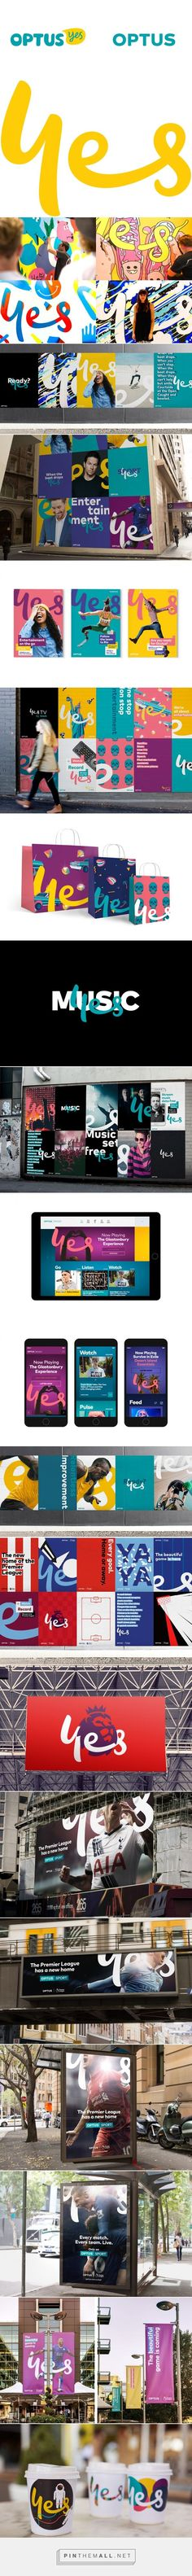 Brand New: New Logo and Identity for Optus by Re... - a grouped images picture - Pin Them All